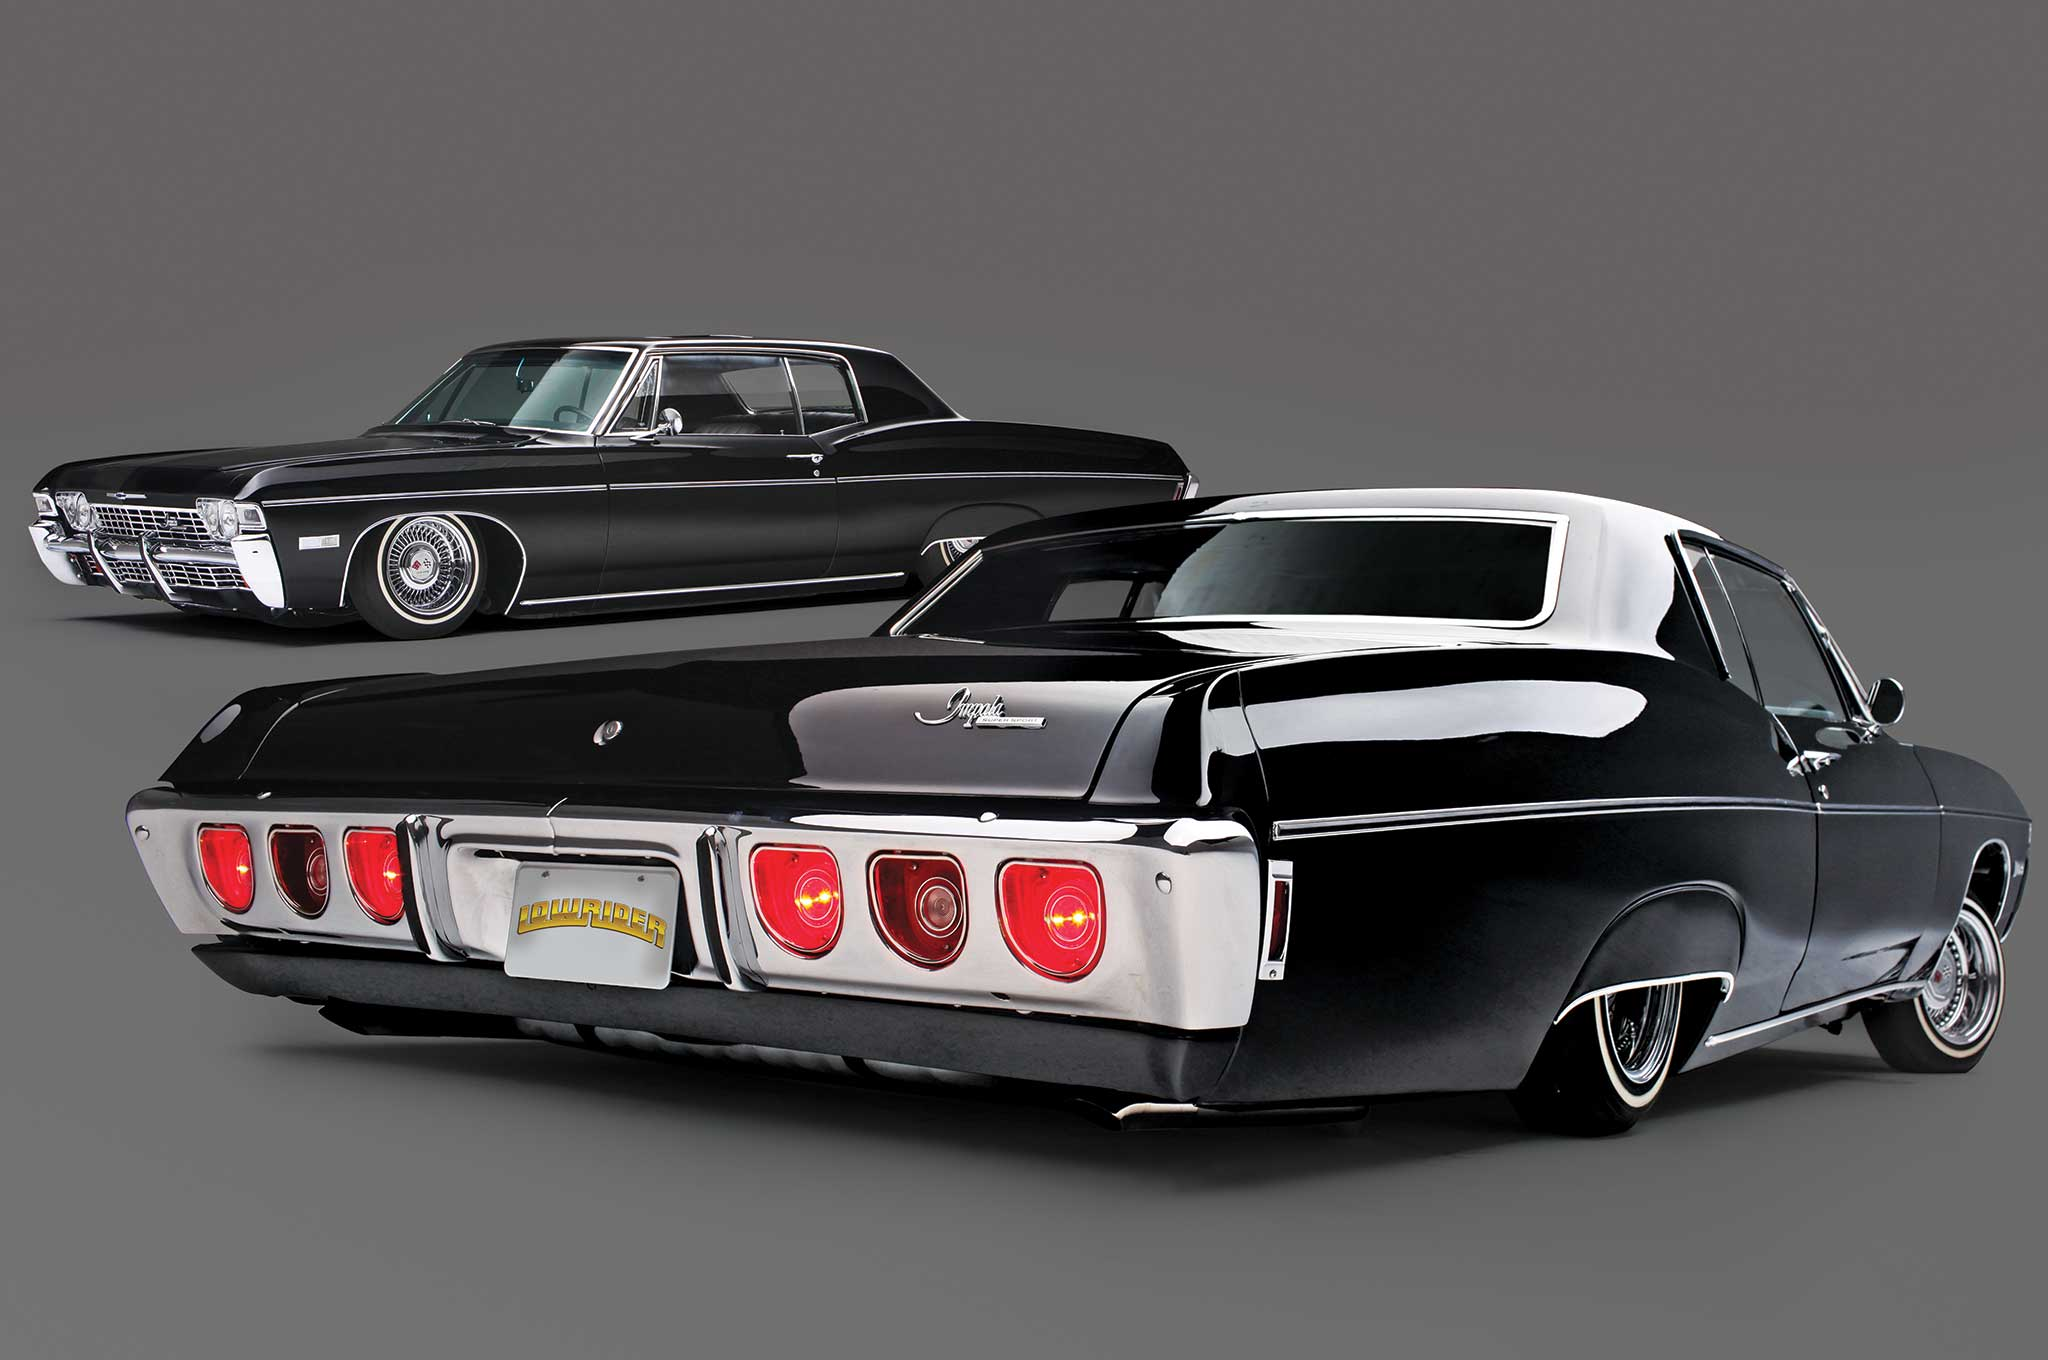 Chevy Ss Interior >> 1968 Chevrolet Impala SS - Black on Black Comeback - Lowrider